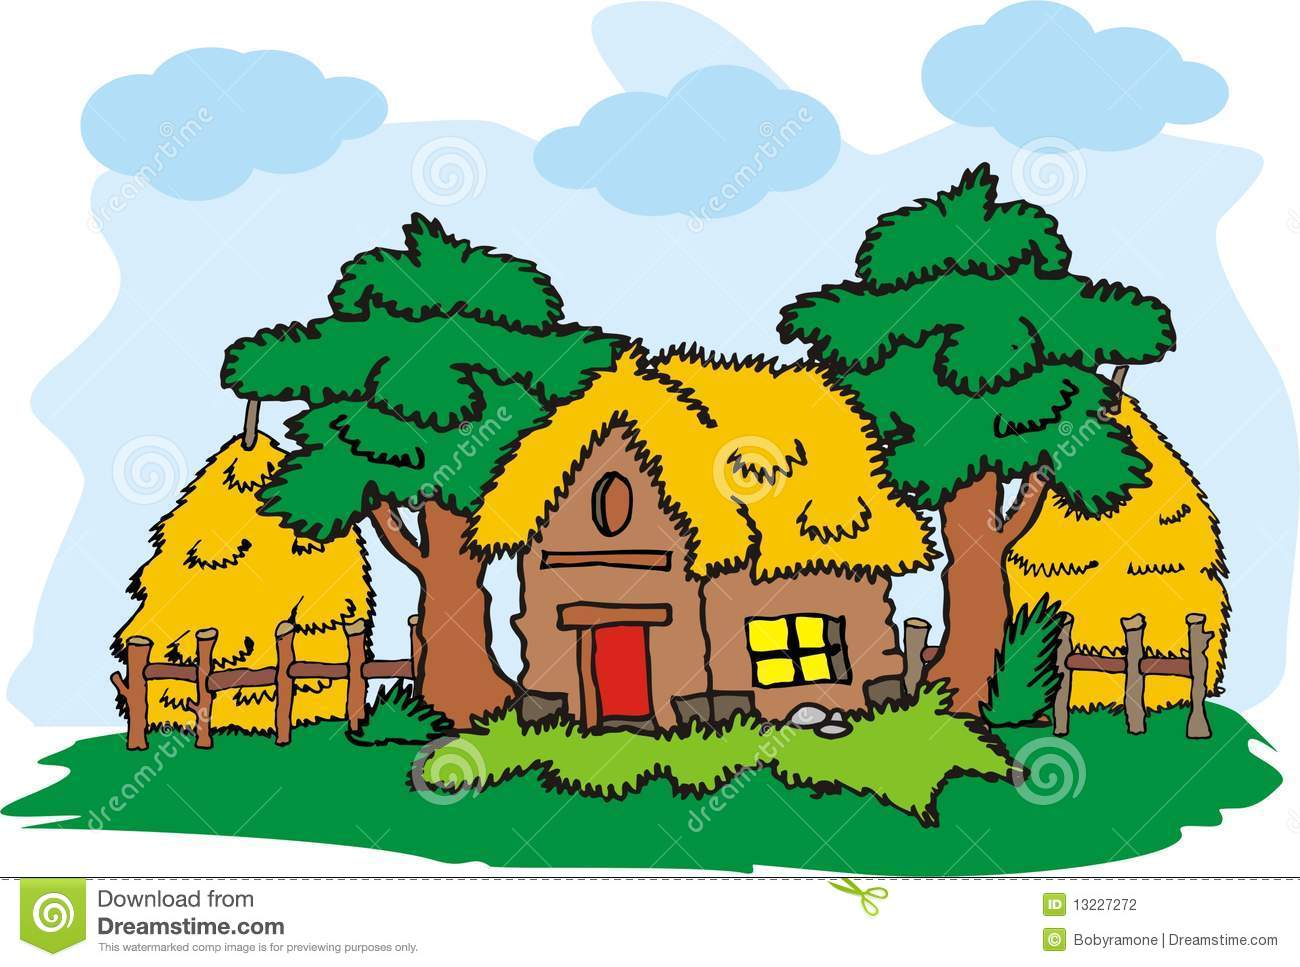 Village clipart #11, Download drawings